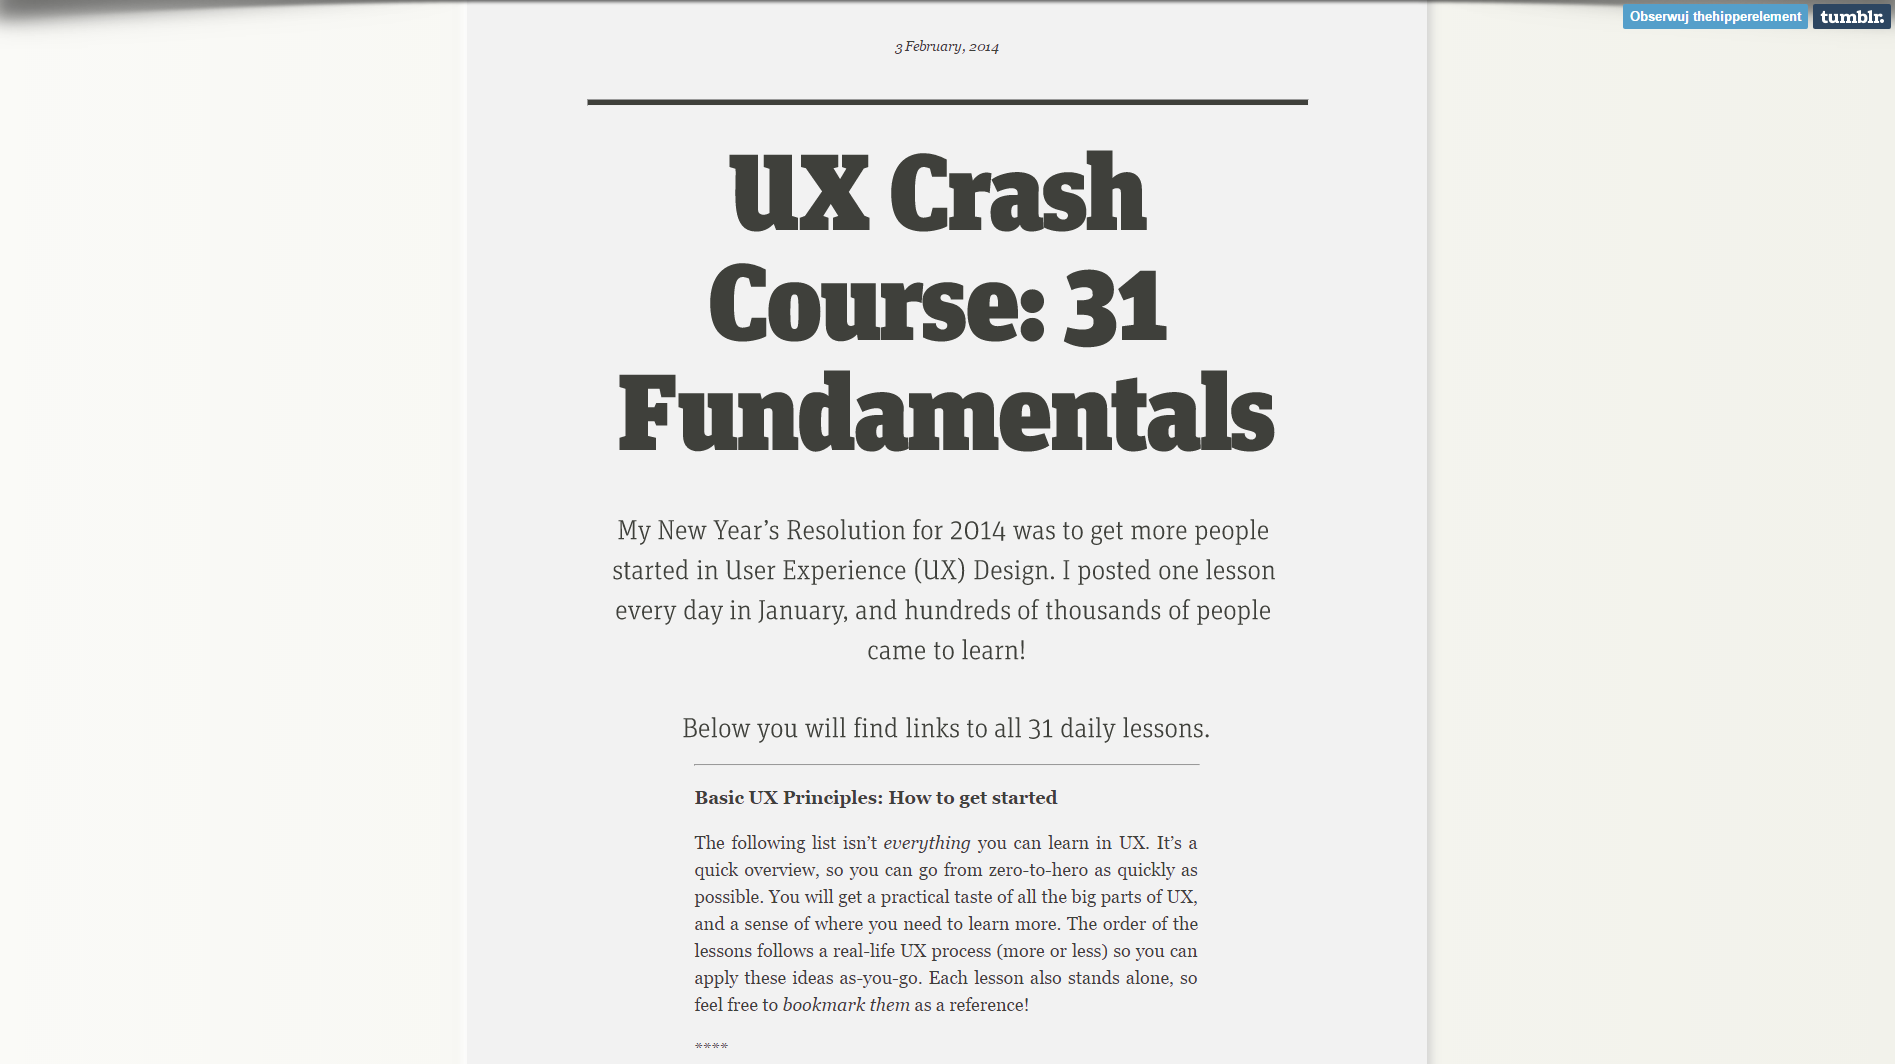 UX Crush Course Screenshot